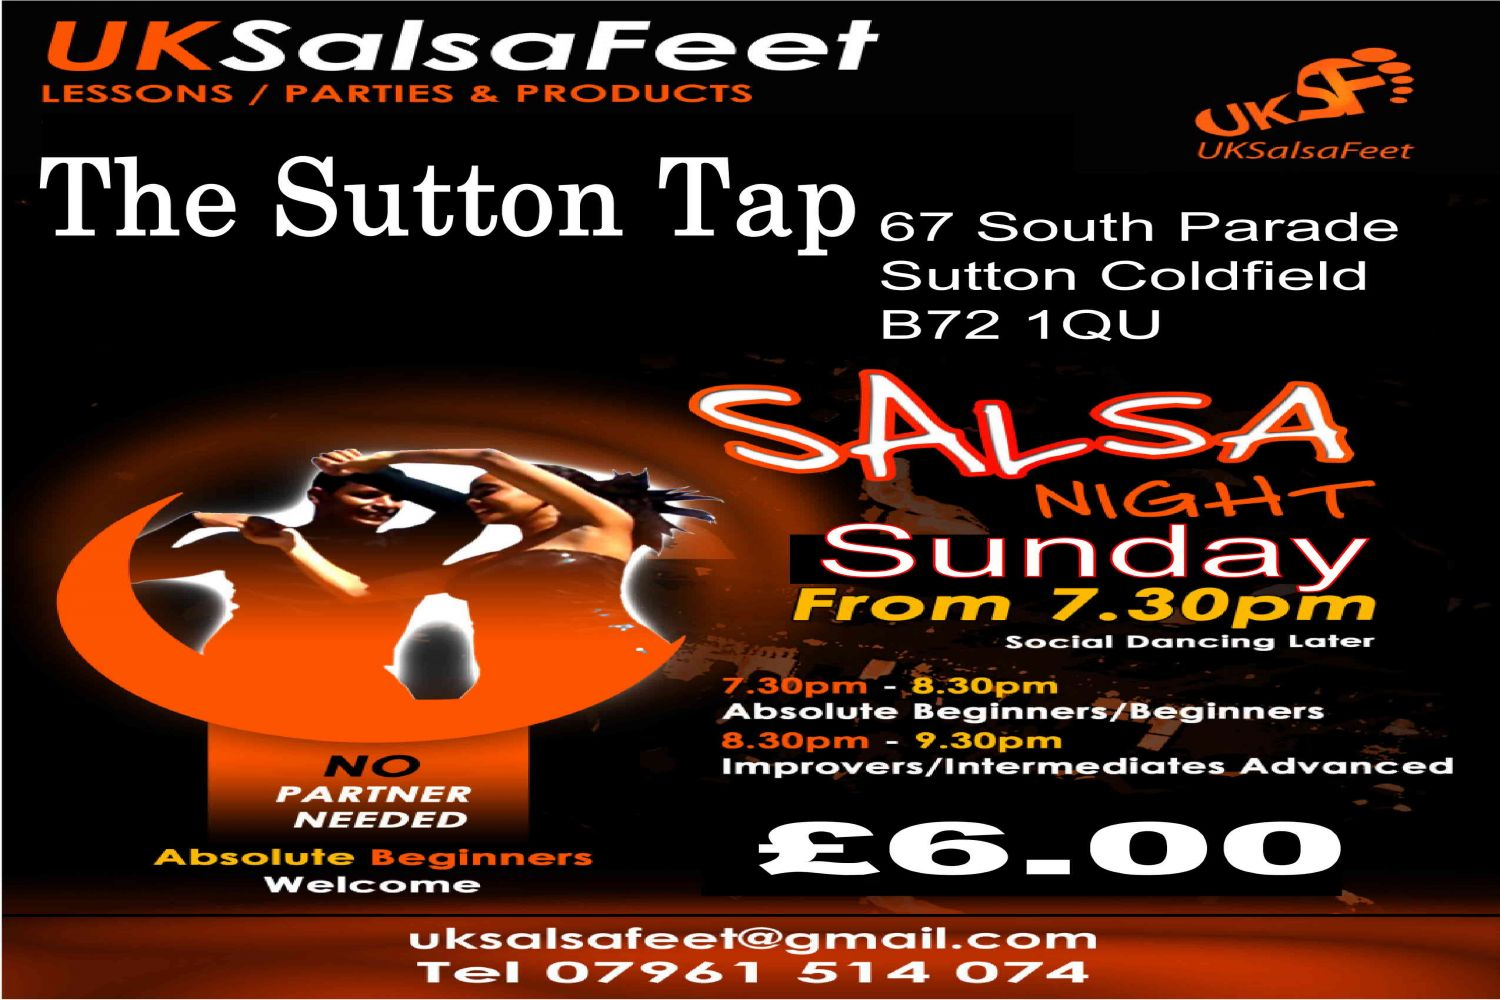 sutton coldfield salsa